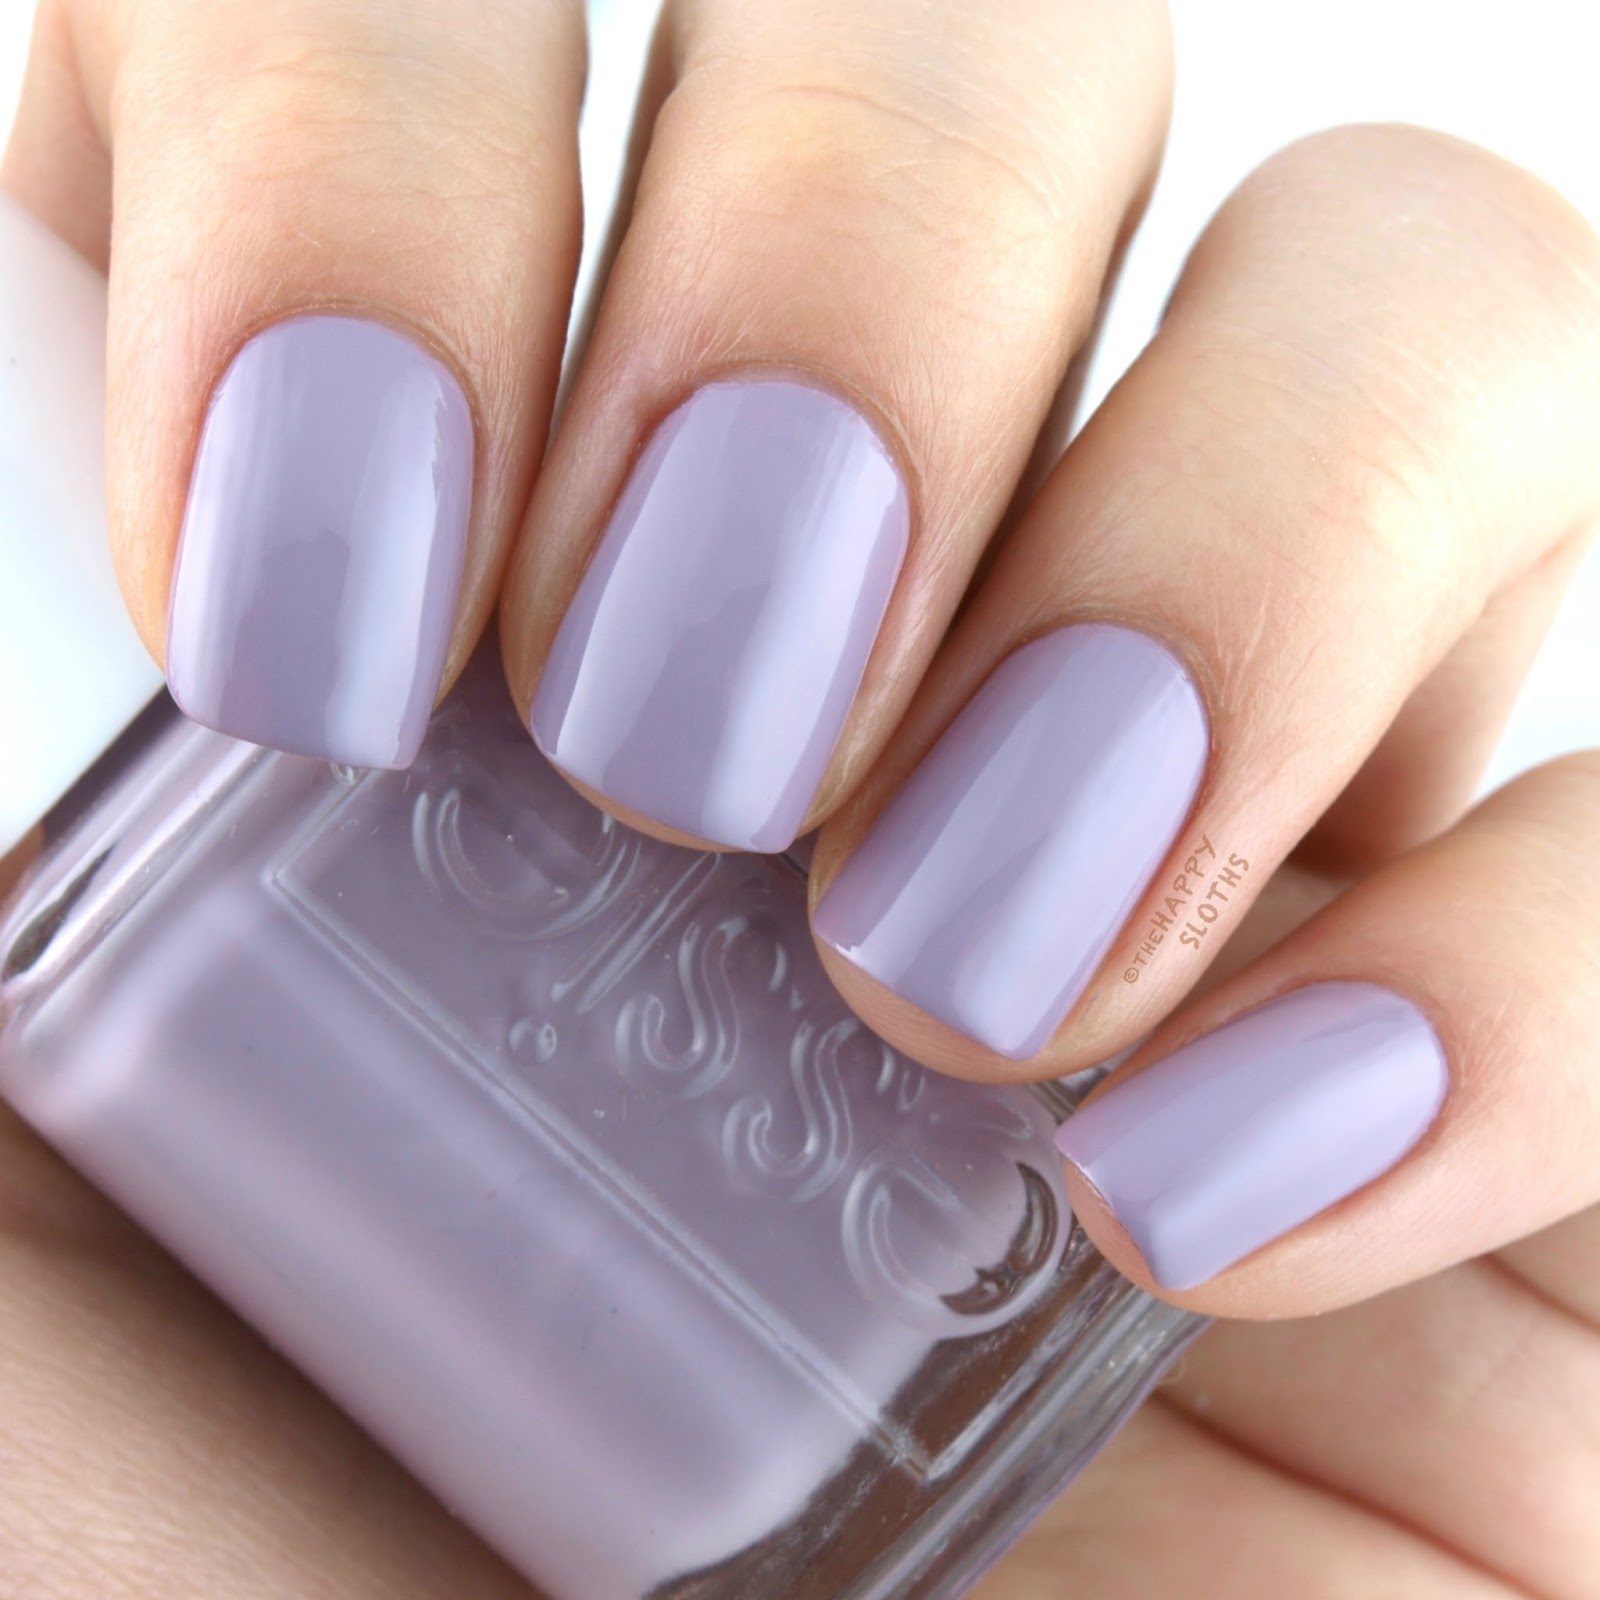 Essie Resort 2017 Ciao Effect: Swatches and Review